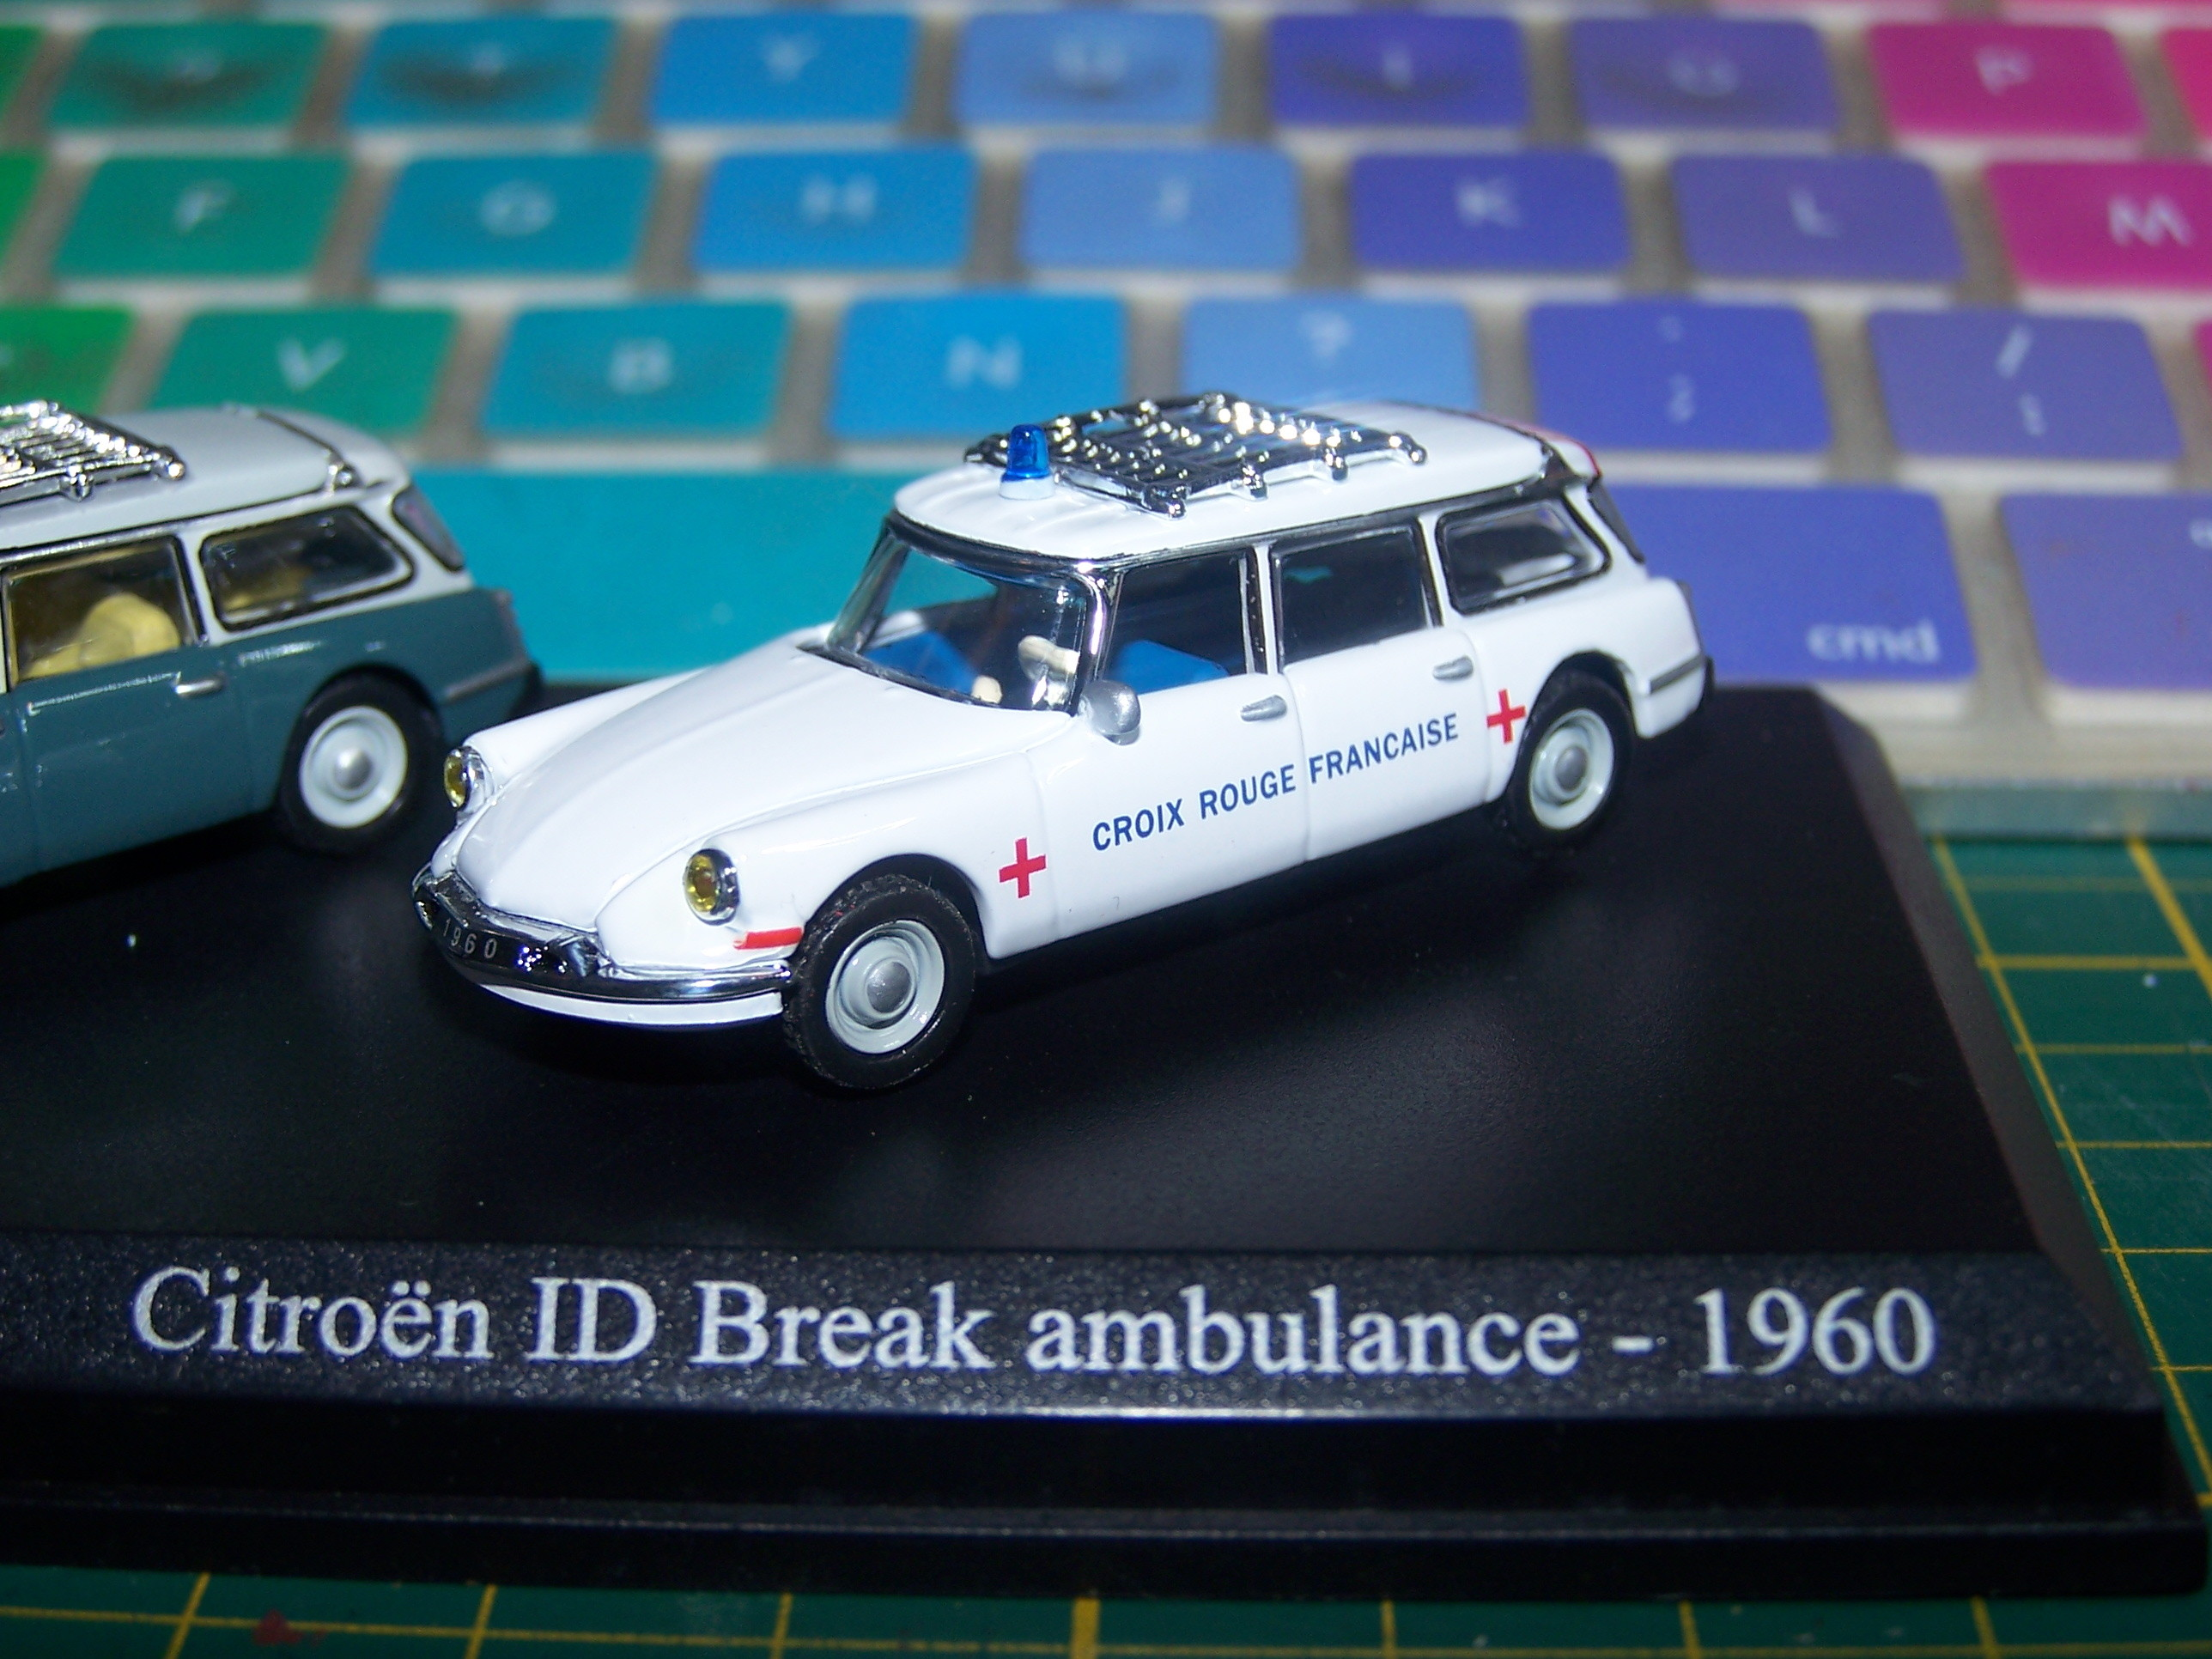 Citröen ID Break Ambulance - 1960